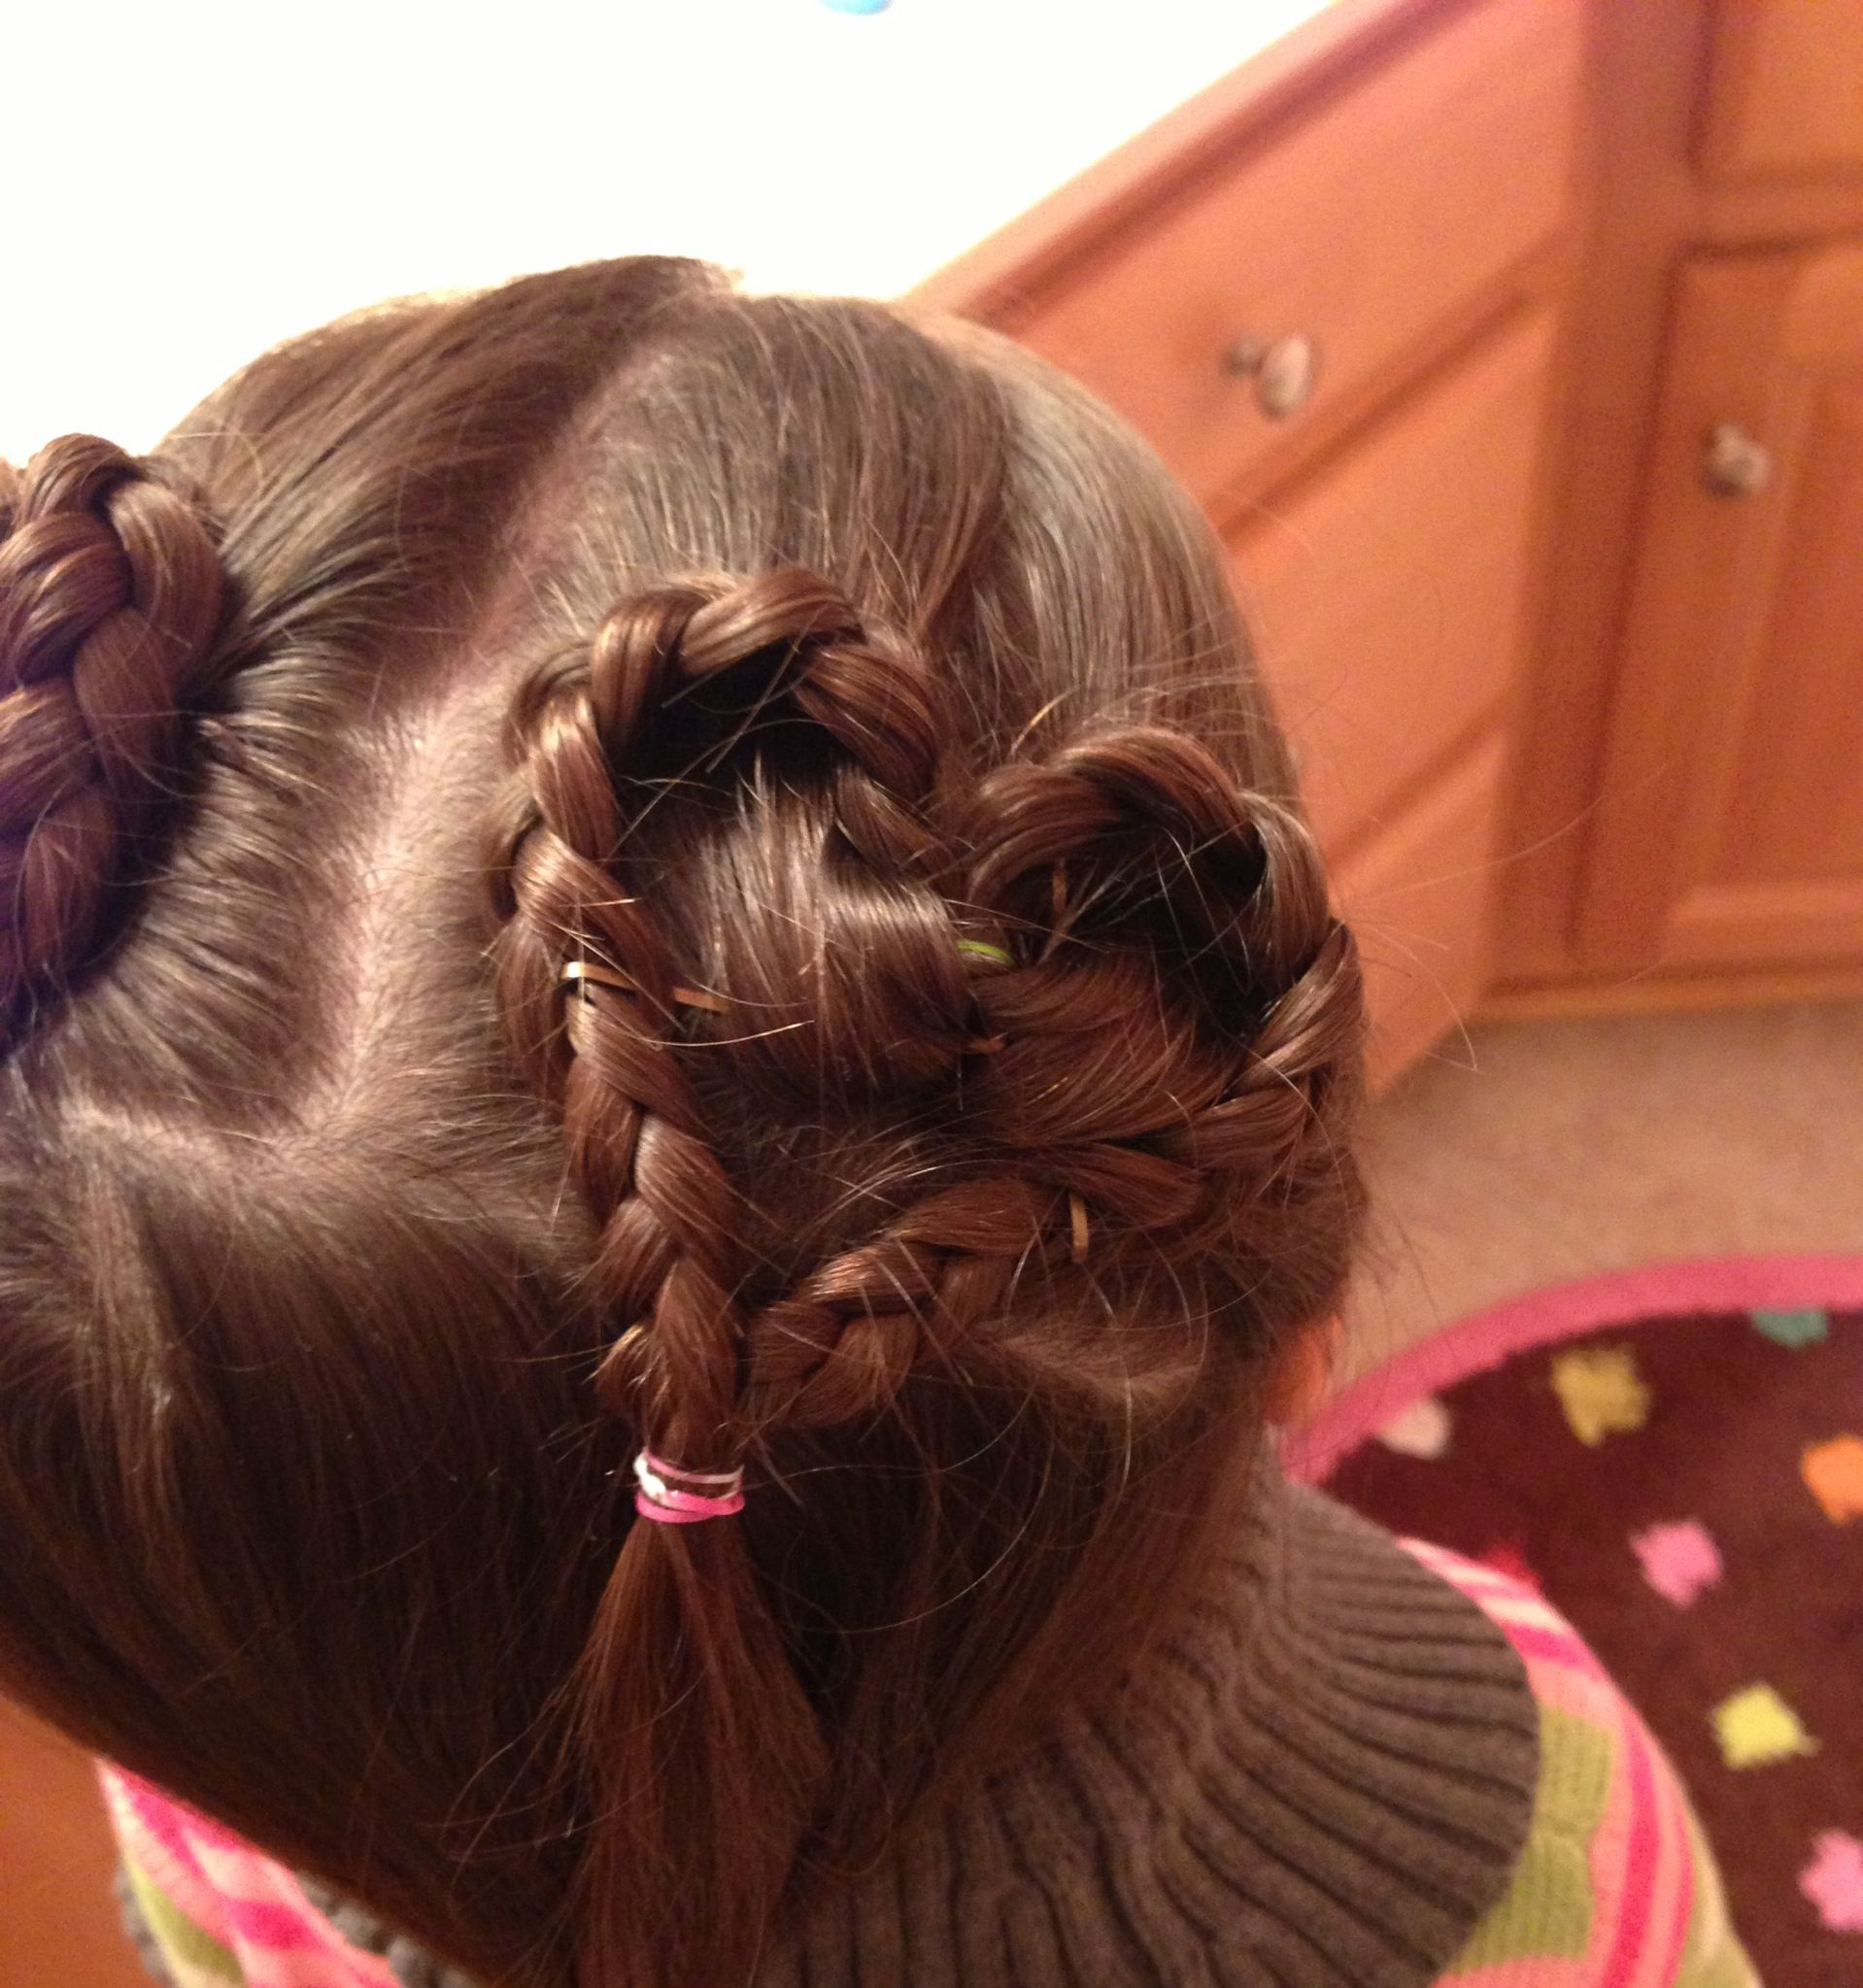 Heart Shaped Braids For Valentine S Day Cute For Little Girls Braids Valentines Girl Hair Dos Cool Hairstyles Little Girl Braids